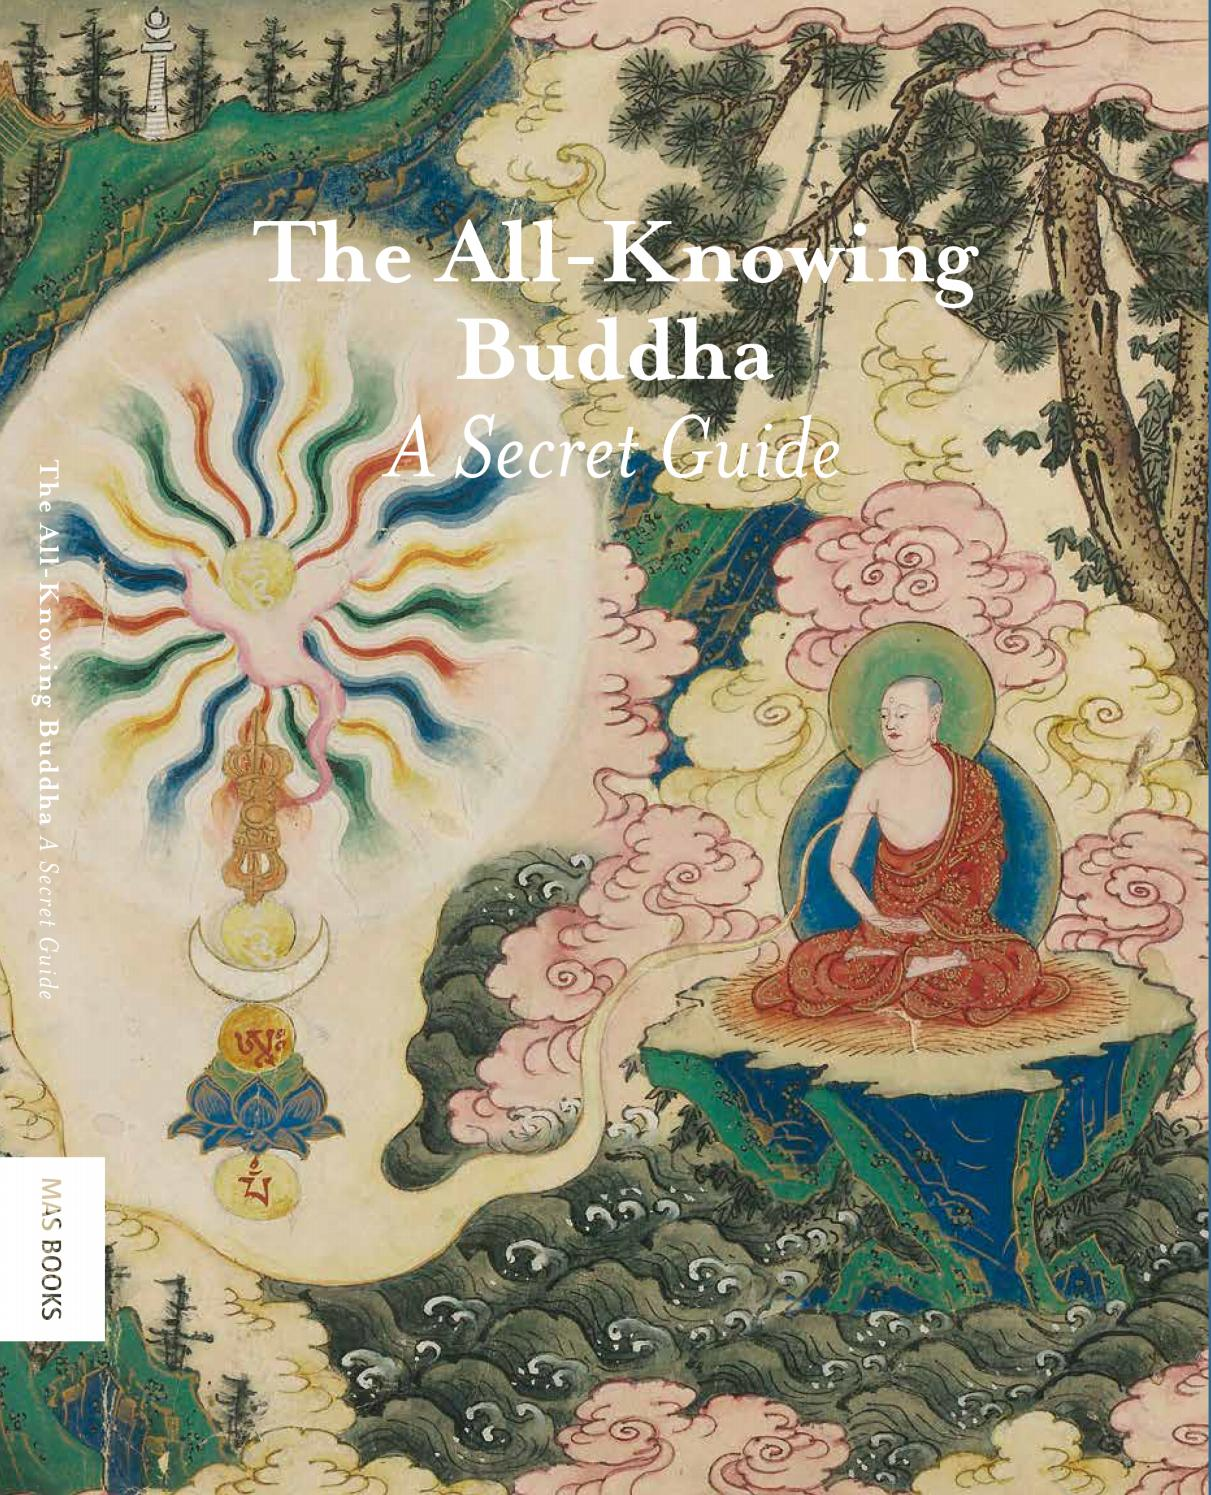 The All Knowing Buddha A Secret Guide By The Rubin Museum Of Art Issuu